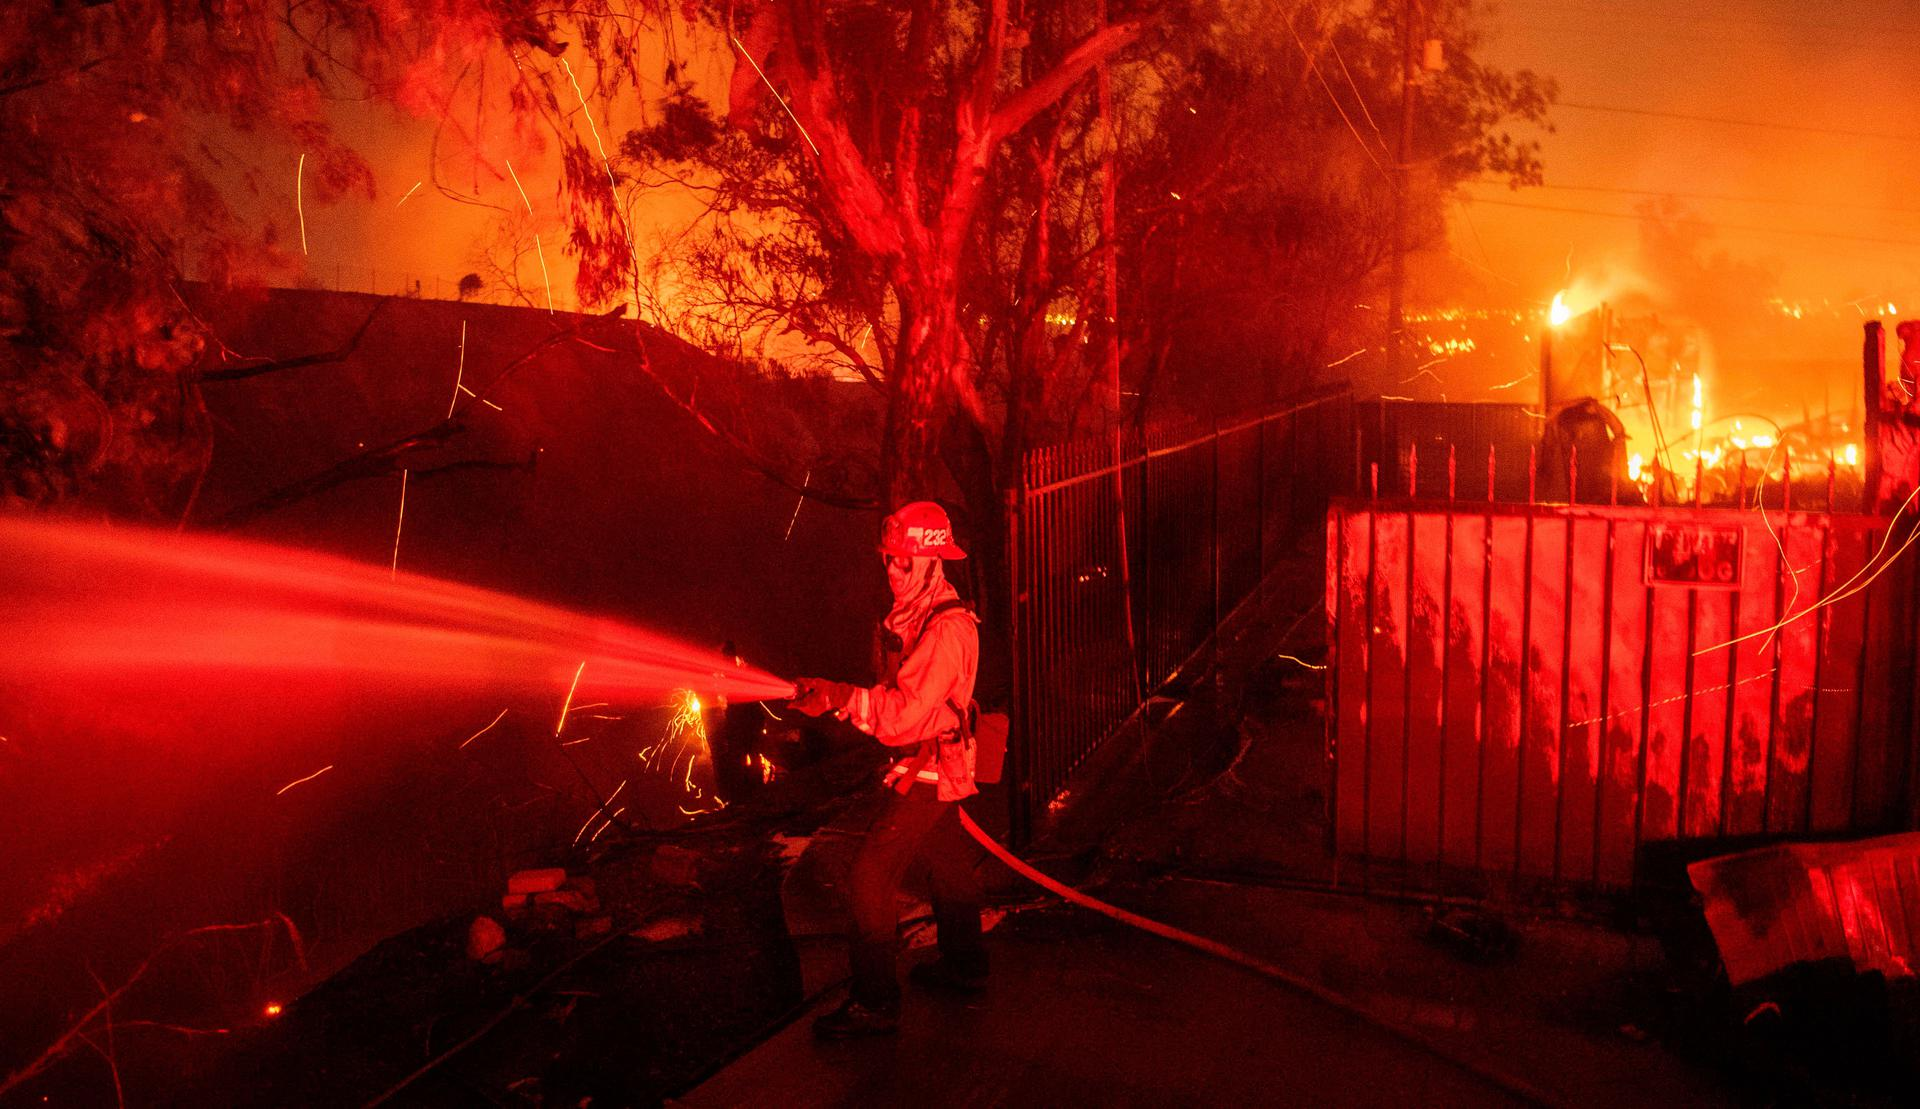 Firefighters battle wind-whipped flames engulfing multiple homes during the Hillside Fire in the North Park neighborhood of San Bernardino, California on October 31, 2019.  JOSH EDELSON / Contributor. AFP via Getty Images (1179184013)